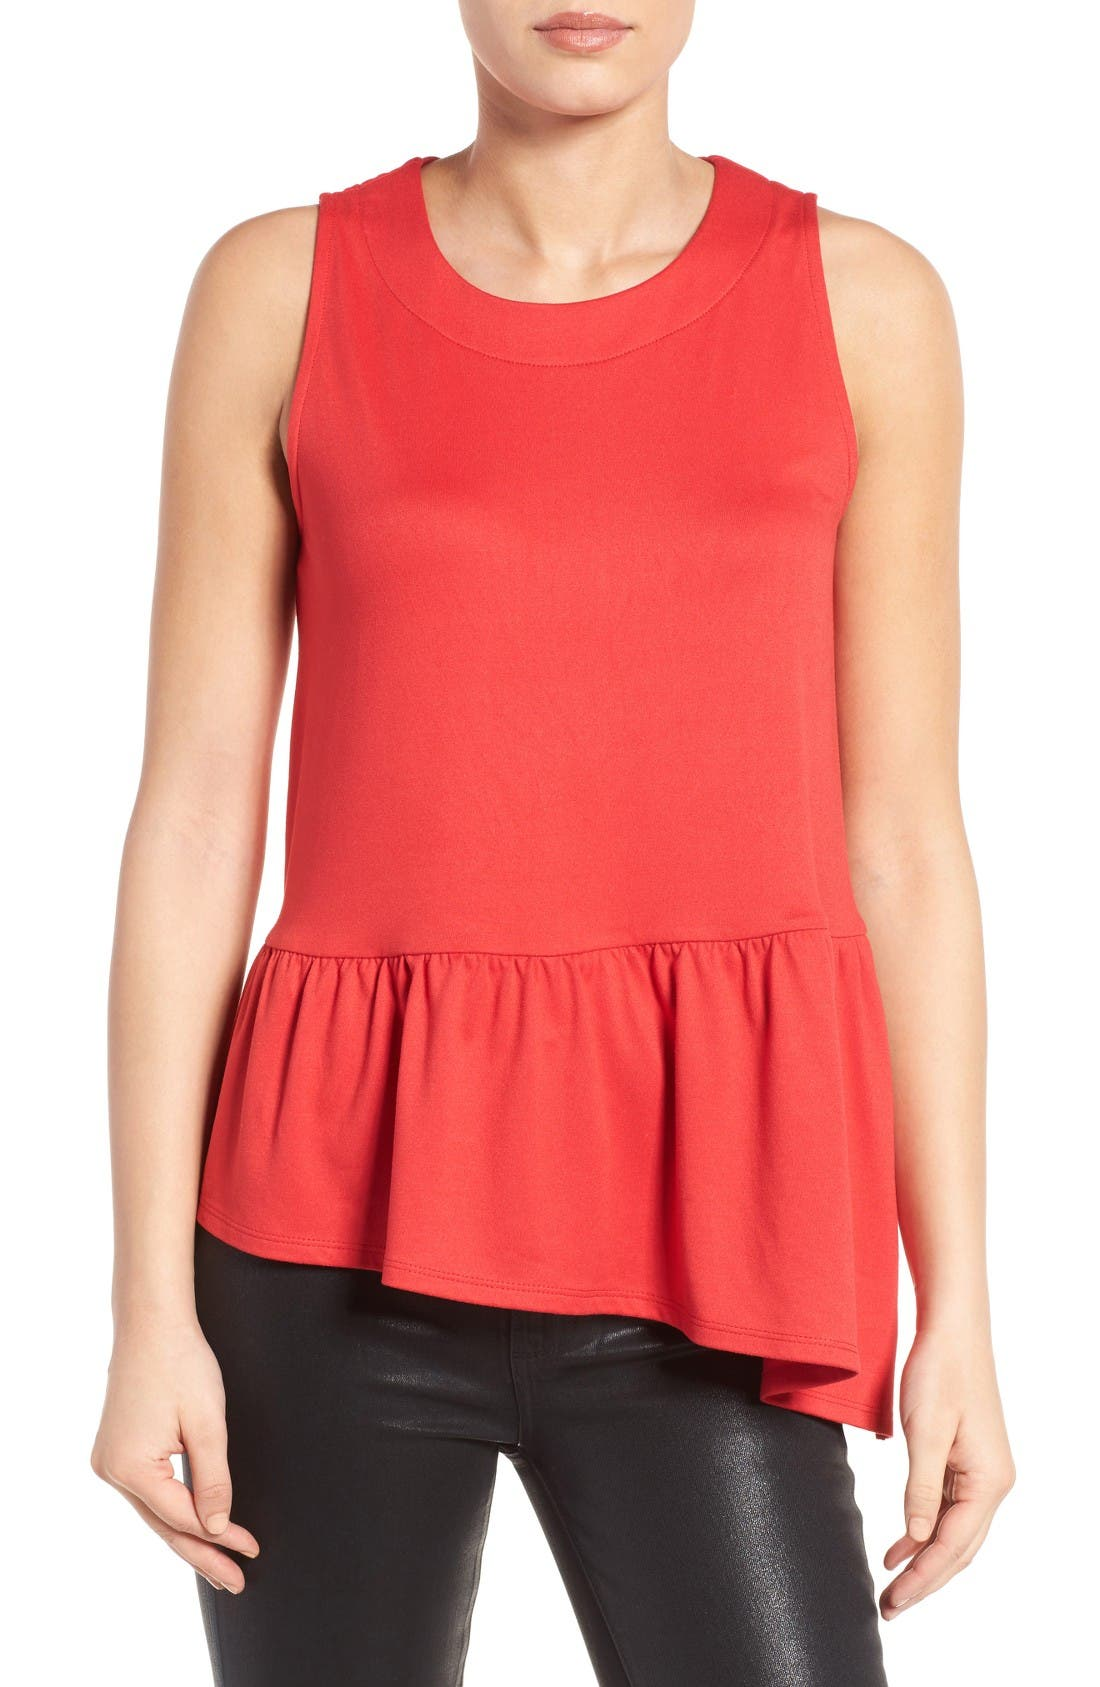 Alternate Image 1 Selected - Gibson Asymmetrical Ruffle Hem Top (Regular & Petite)